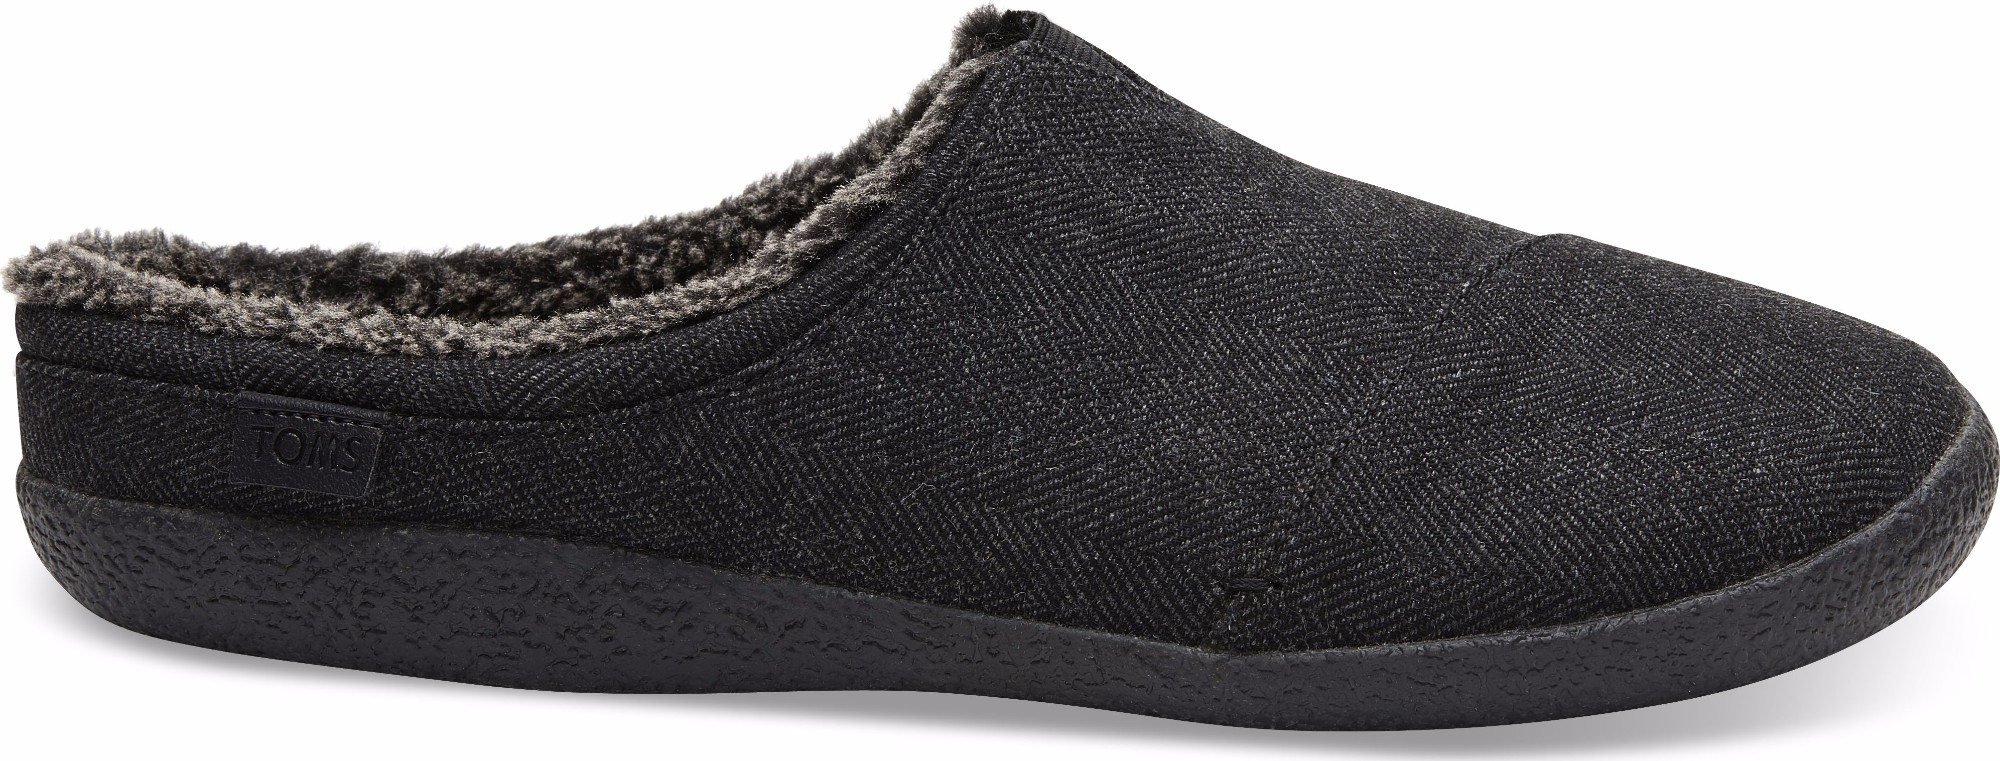 b7cd5631ee2 Previous. TOMS Herringbone Woolen Men S Berkeley Slipper ...